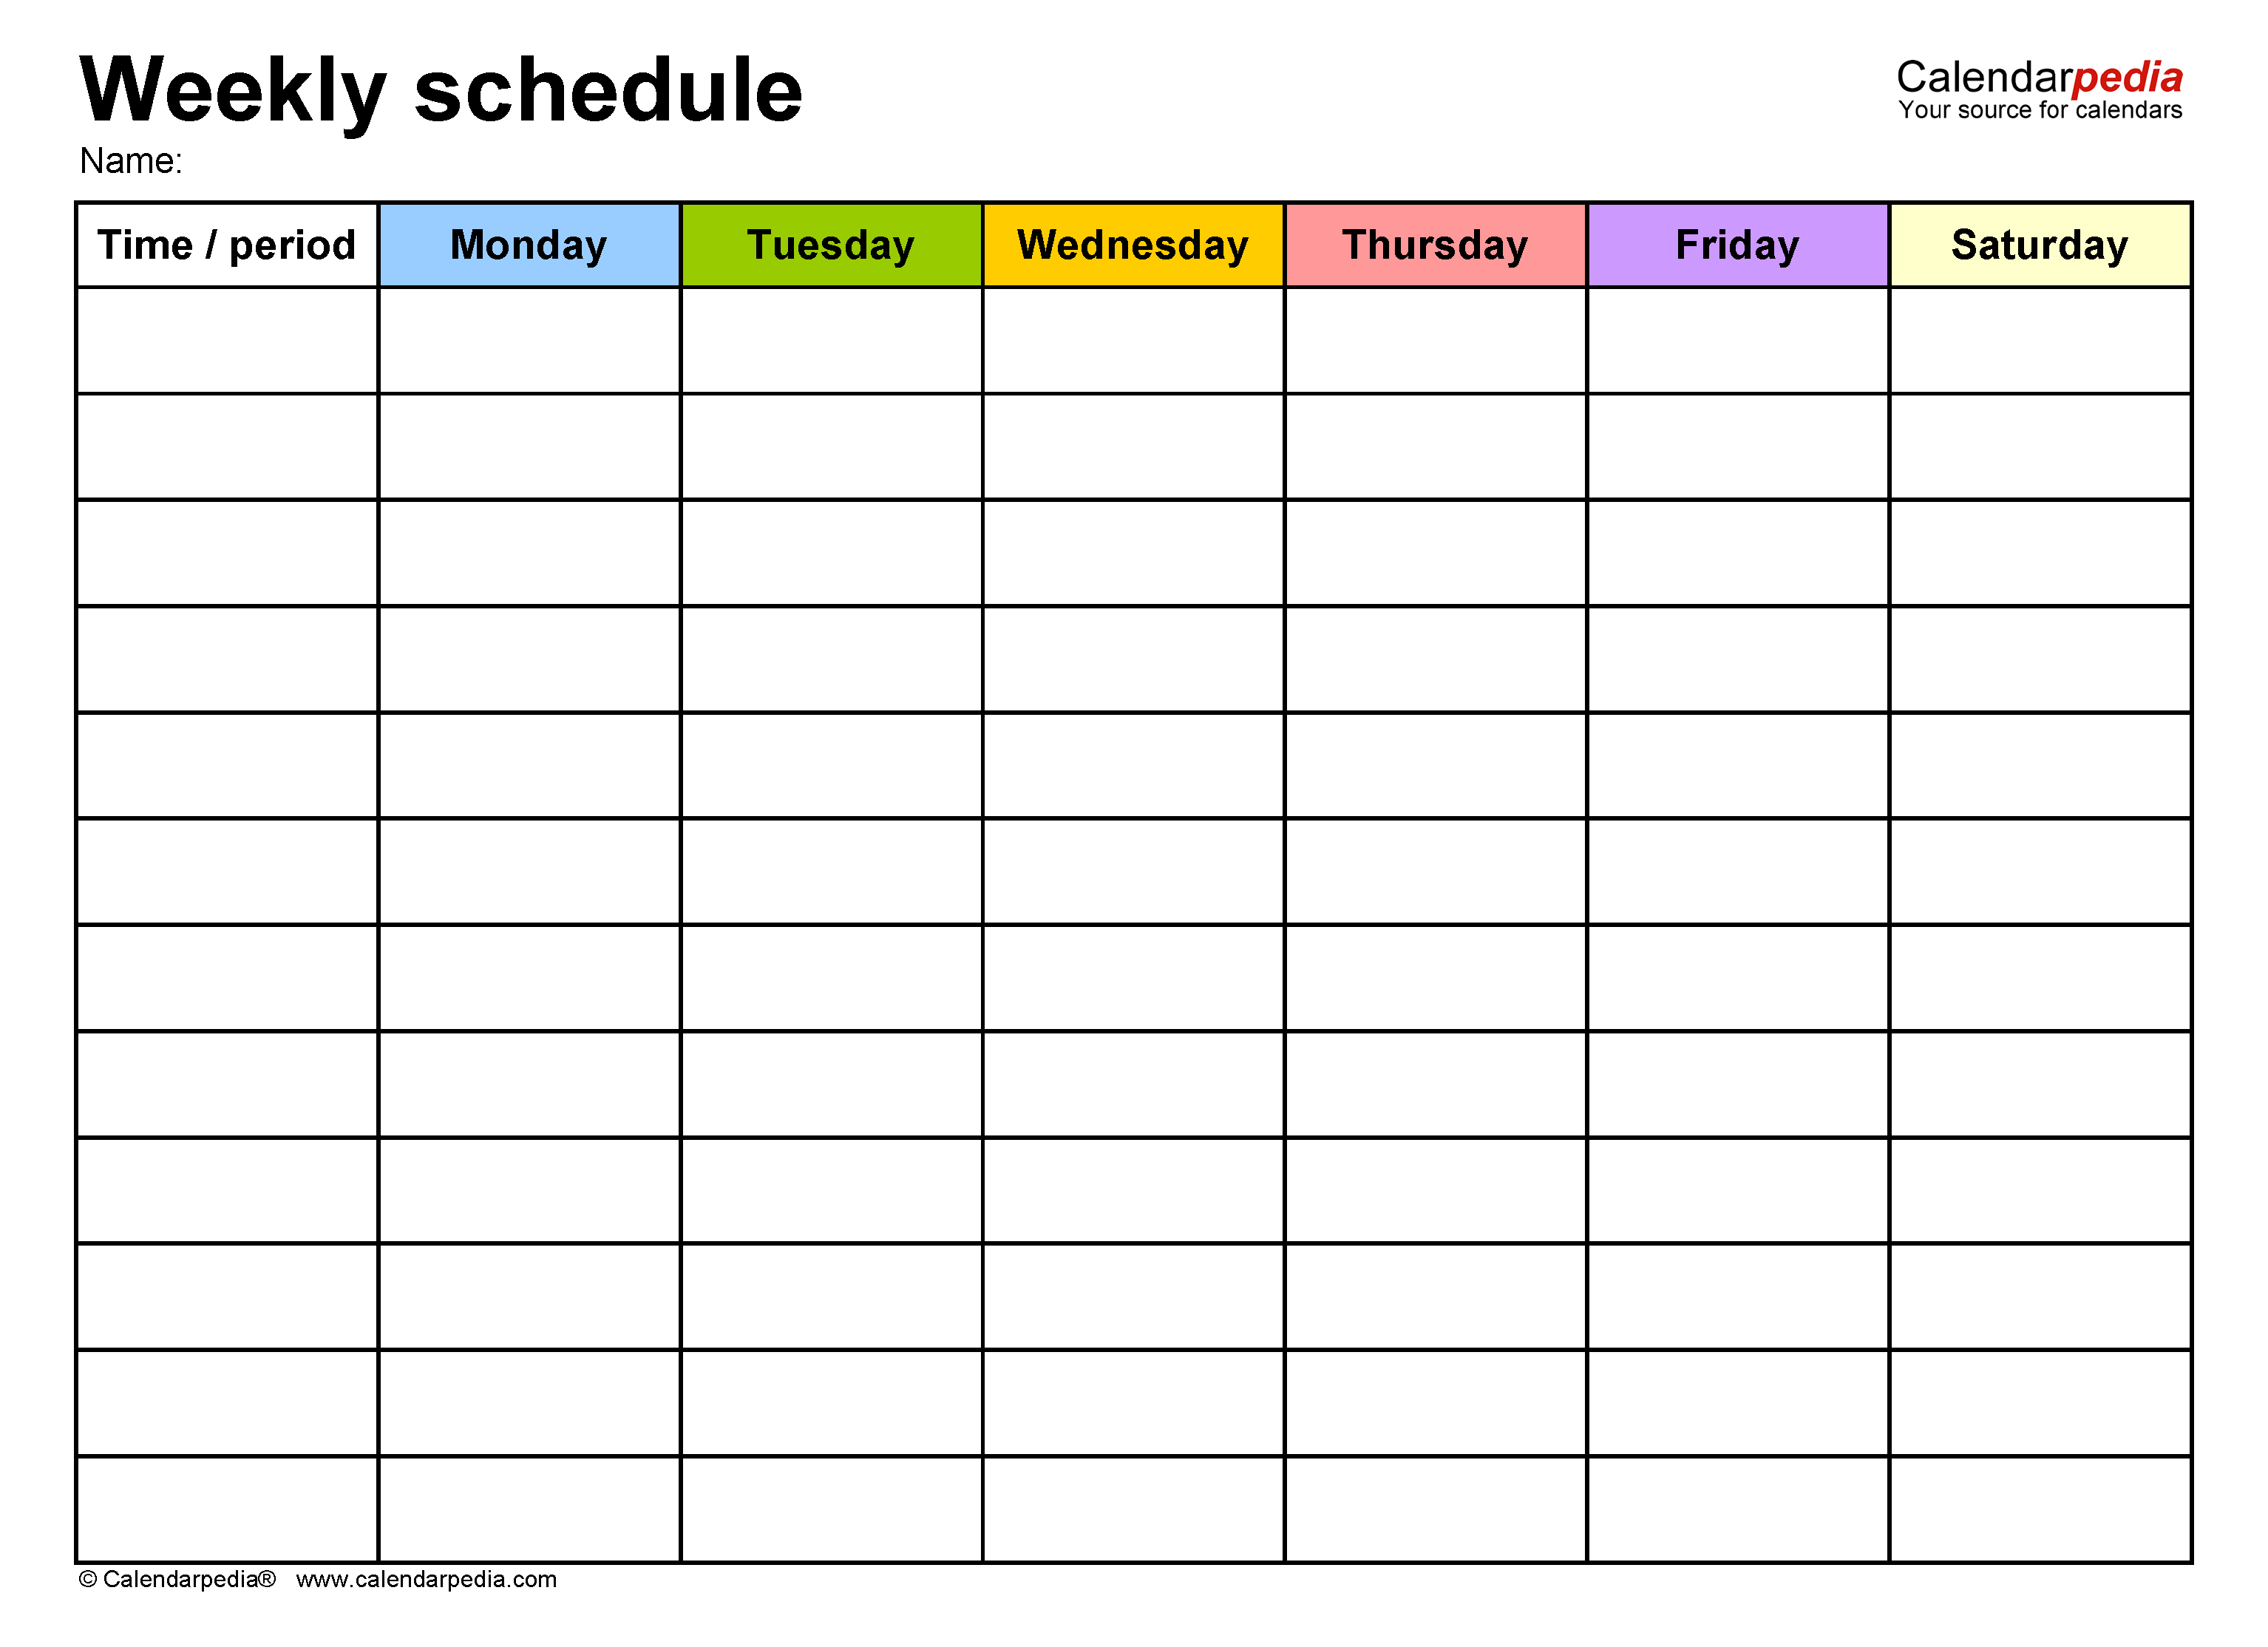 Free Weekly Schedule Templates For Word - 18 Templates with Sunday Through Saturday Calendar